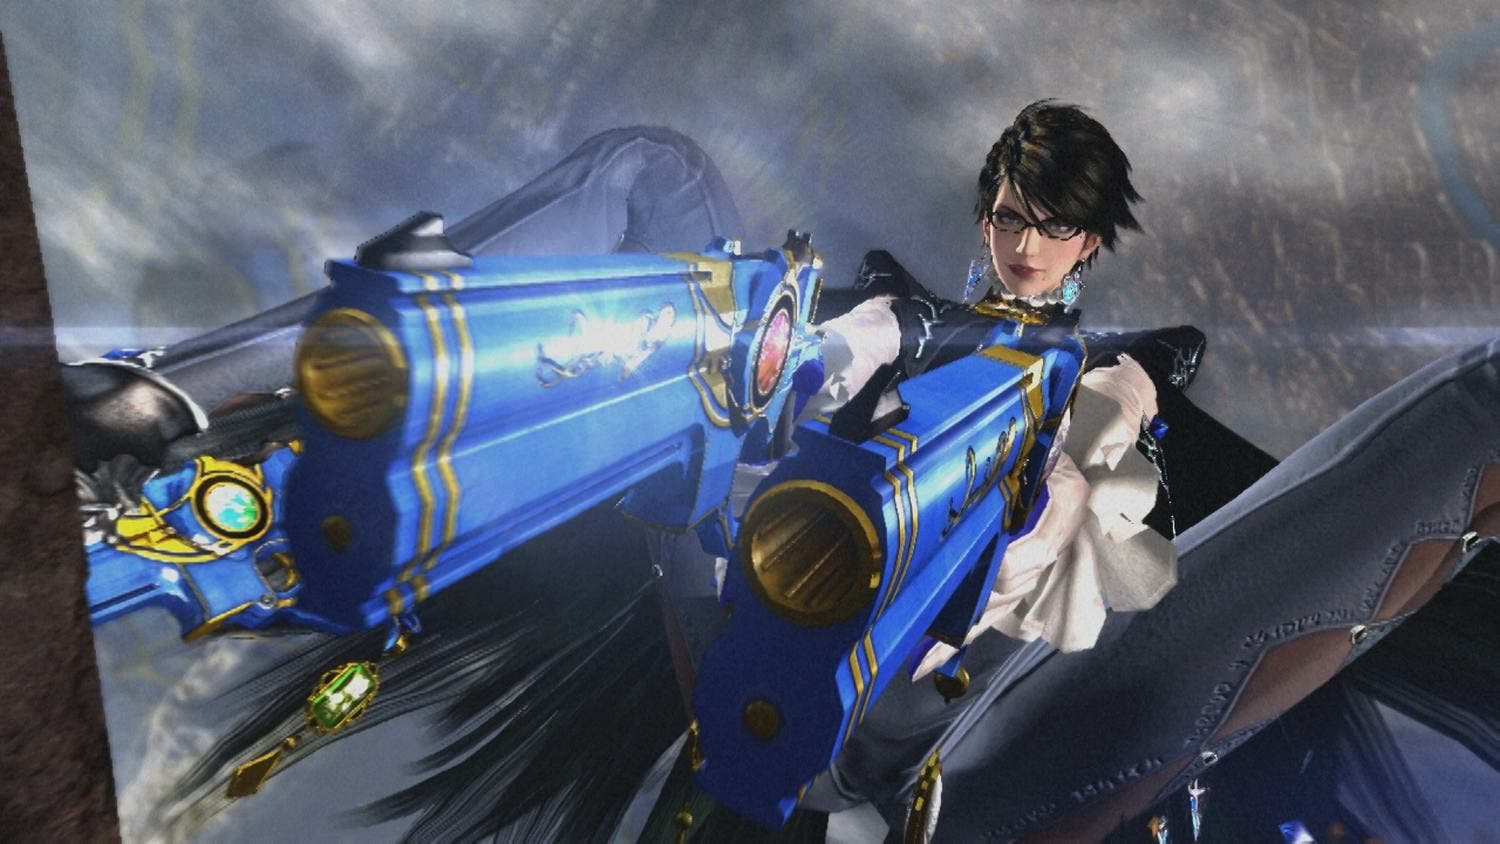 Kamiya vuelve a dejar claro que 'Bayonetta 2' y 'The Wonderful 101' son exclusivos de Wii U